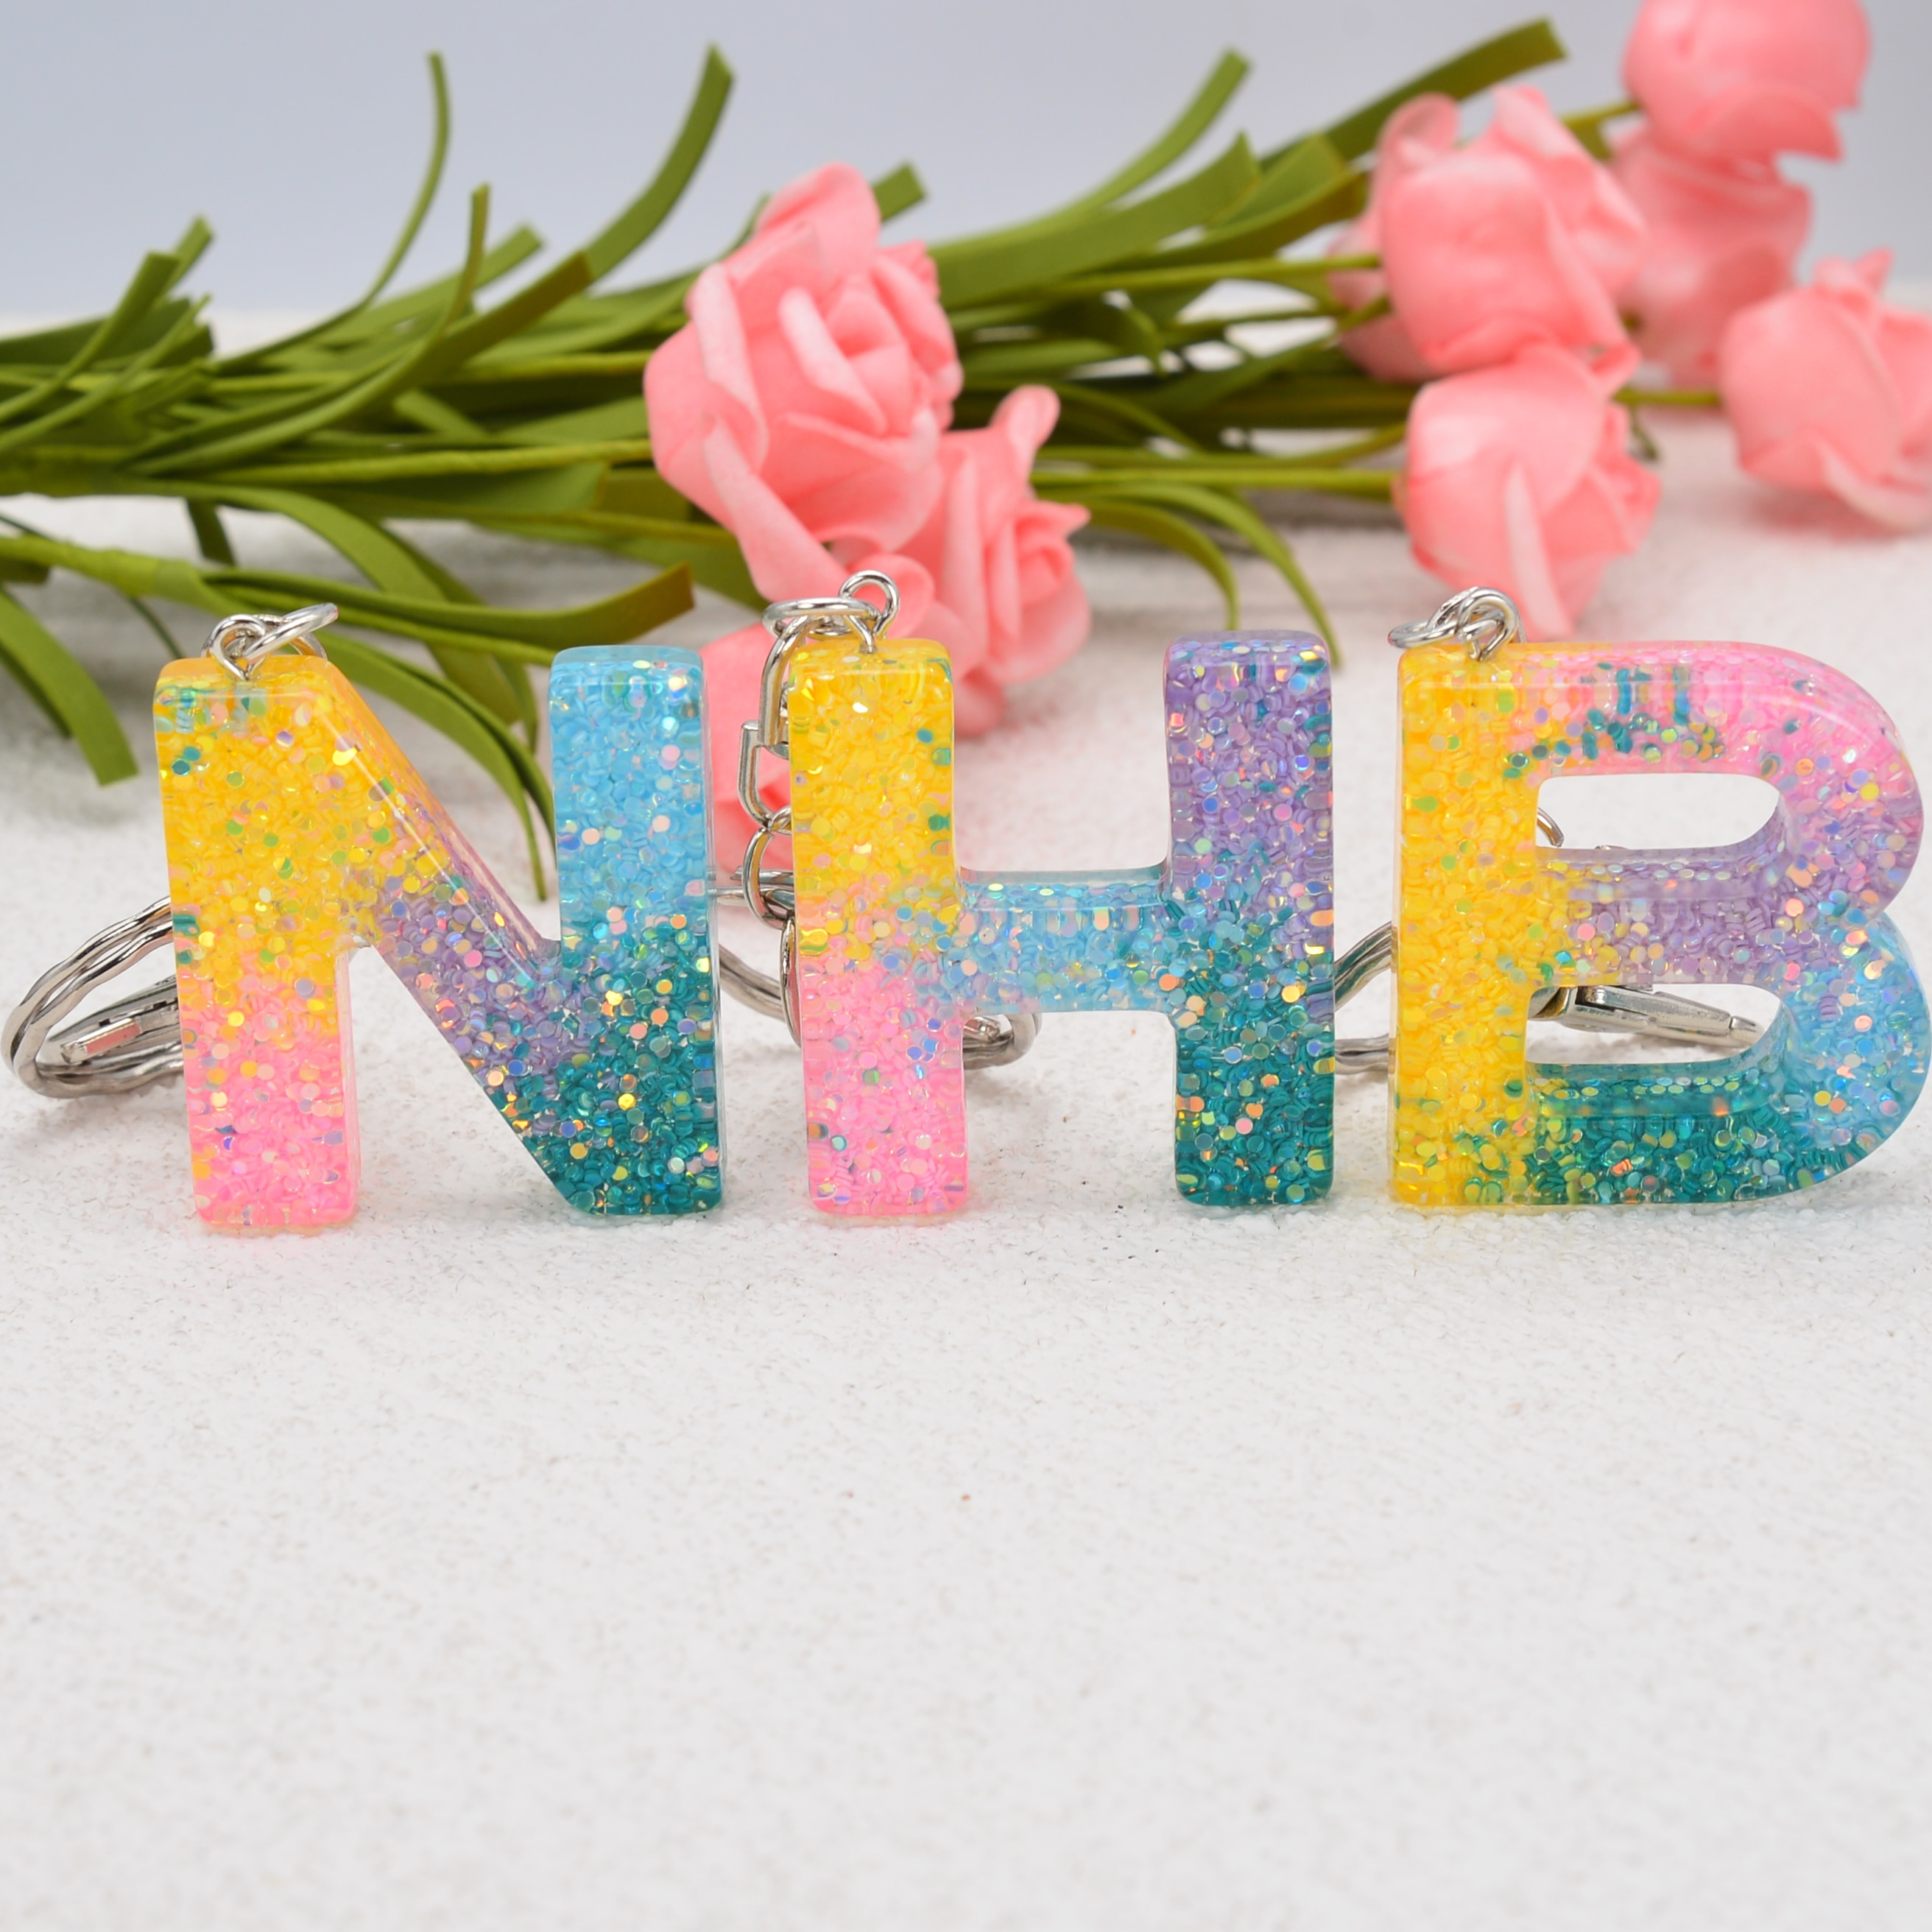 1Pc New Fashion English Letter Colorful Sequin Keychain Resin Keyring Charms Bag Car Pendant Jewelry